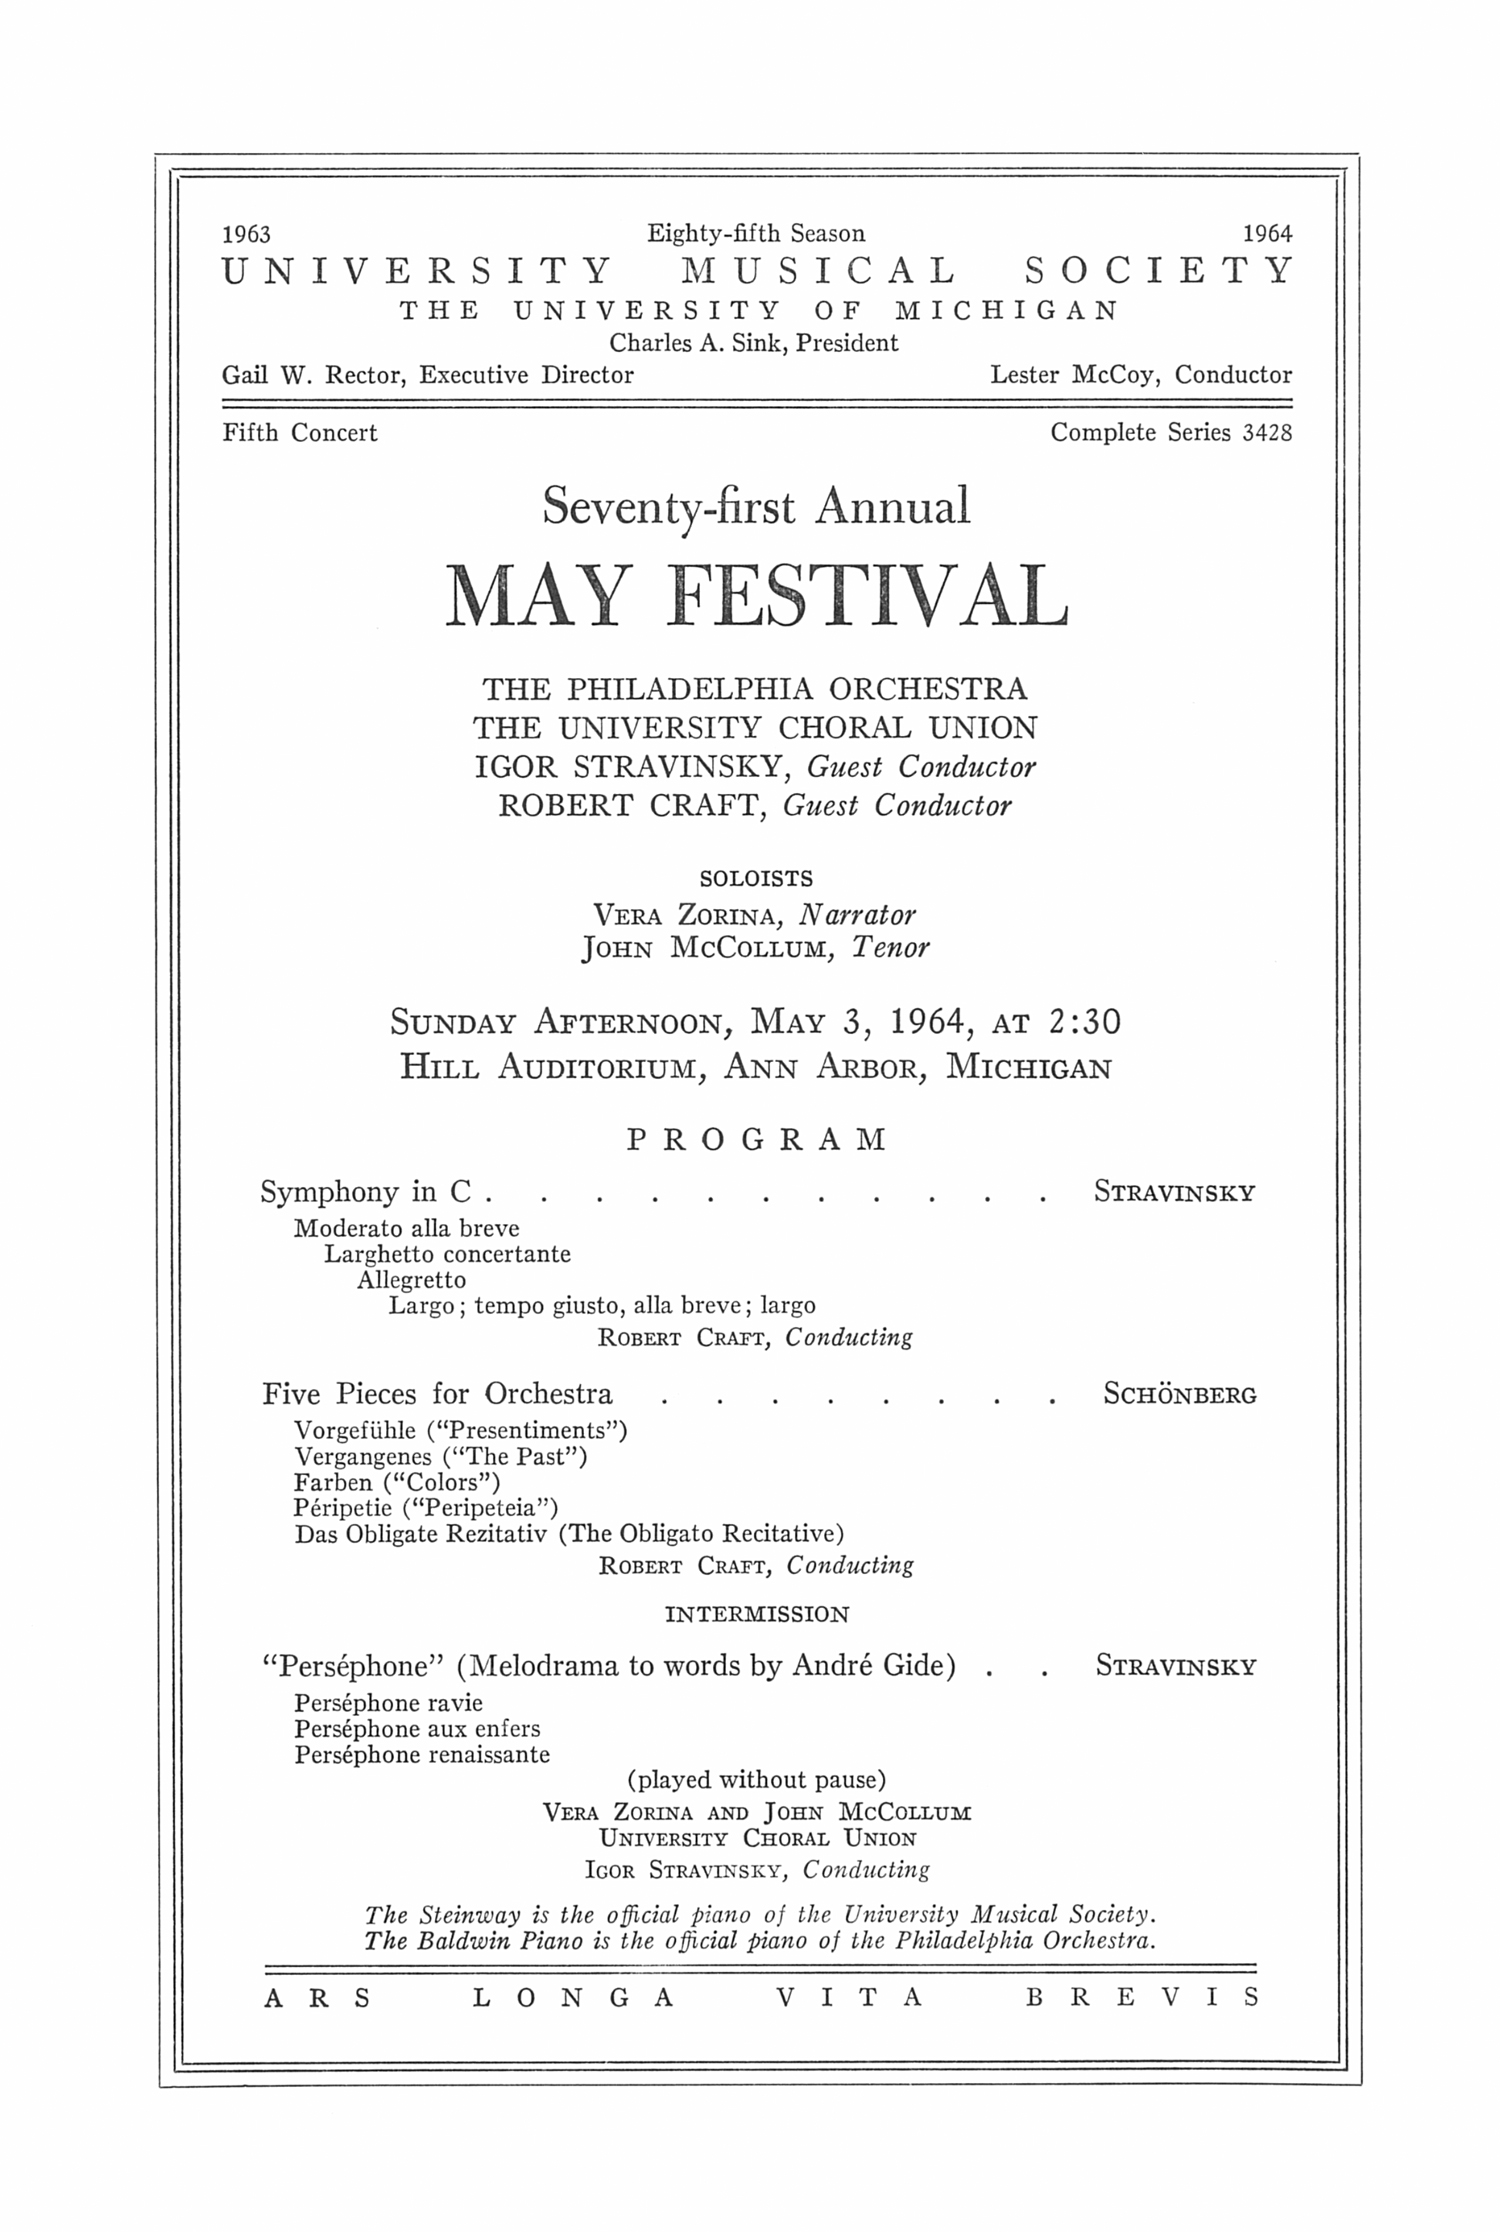 UMS Concert Program, May 3, 1964: Seventy-first Annual May Festival -- The Philadelphia Orchestra image